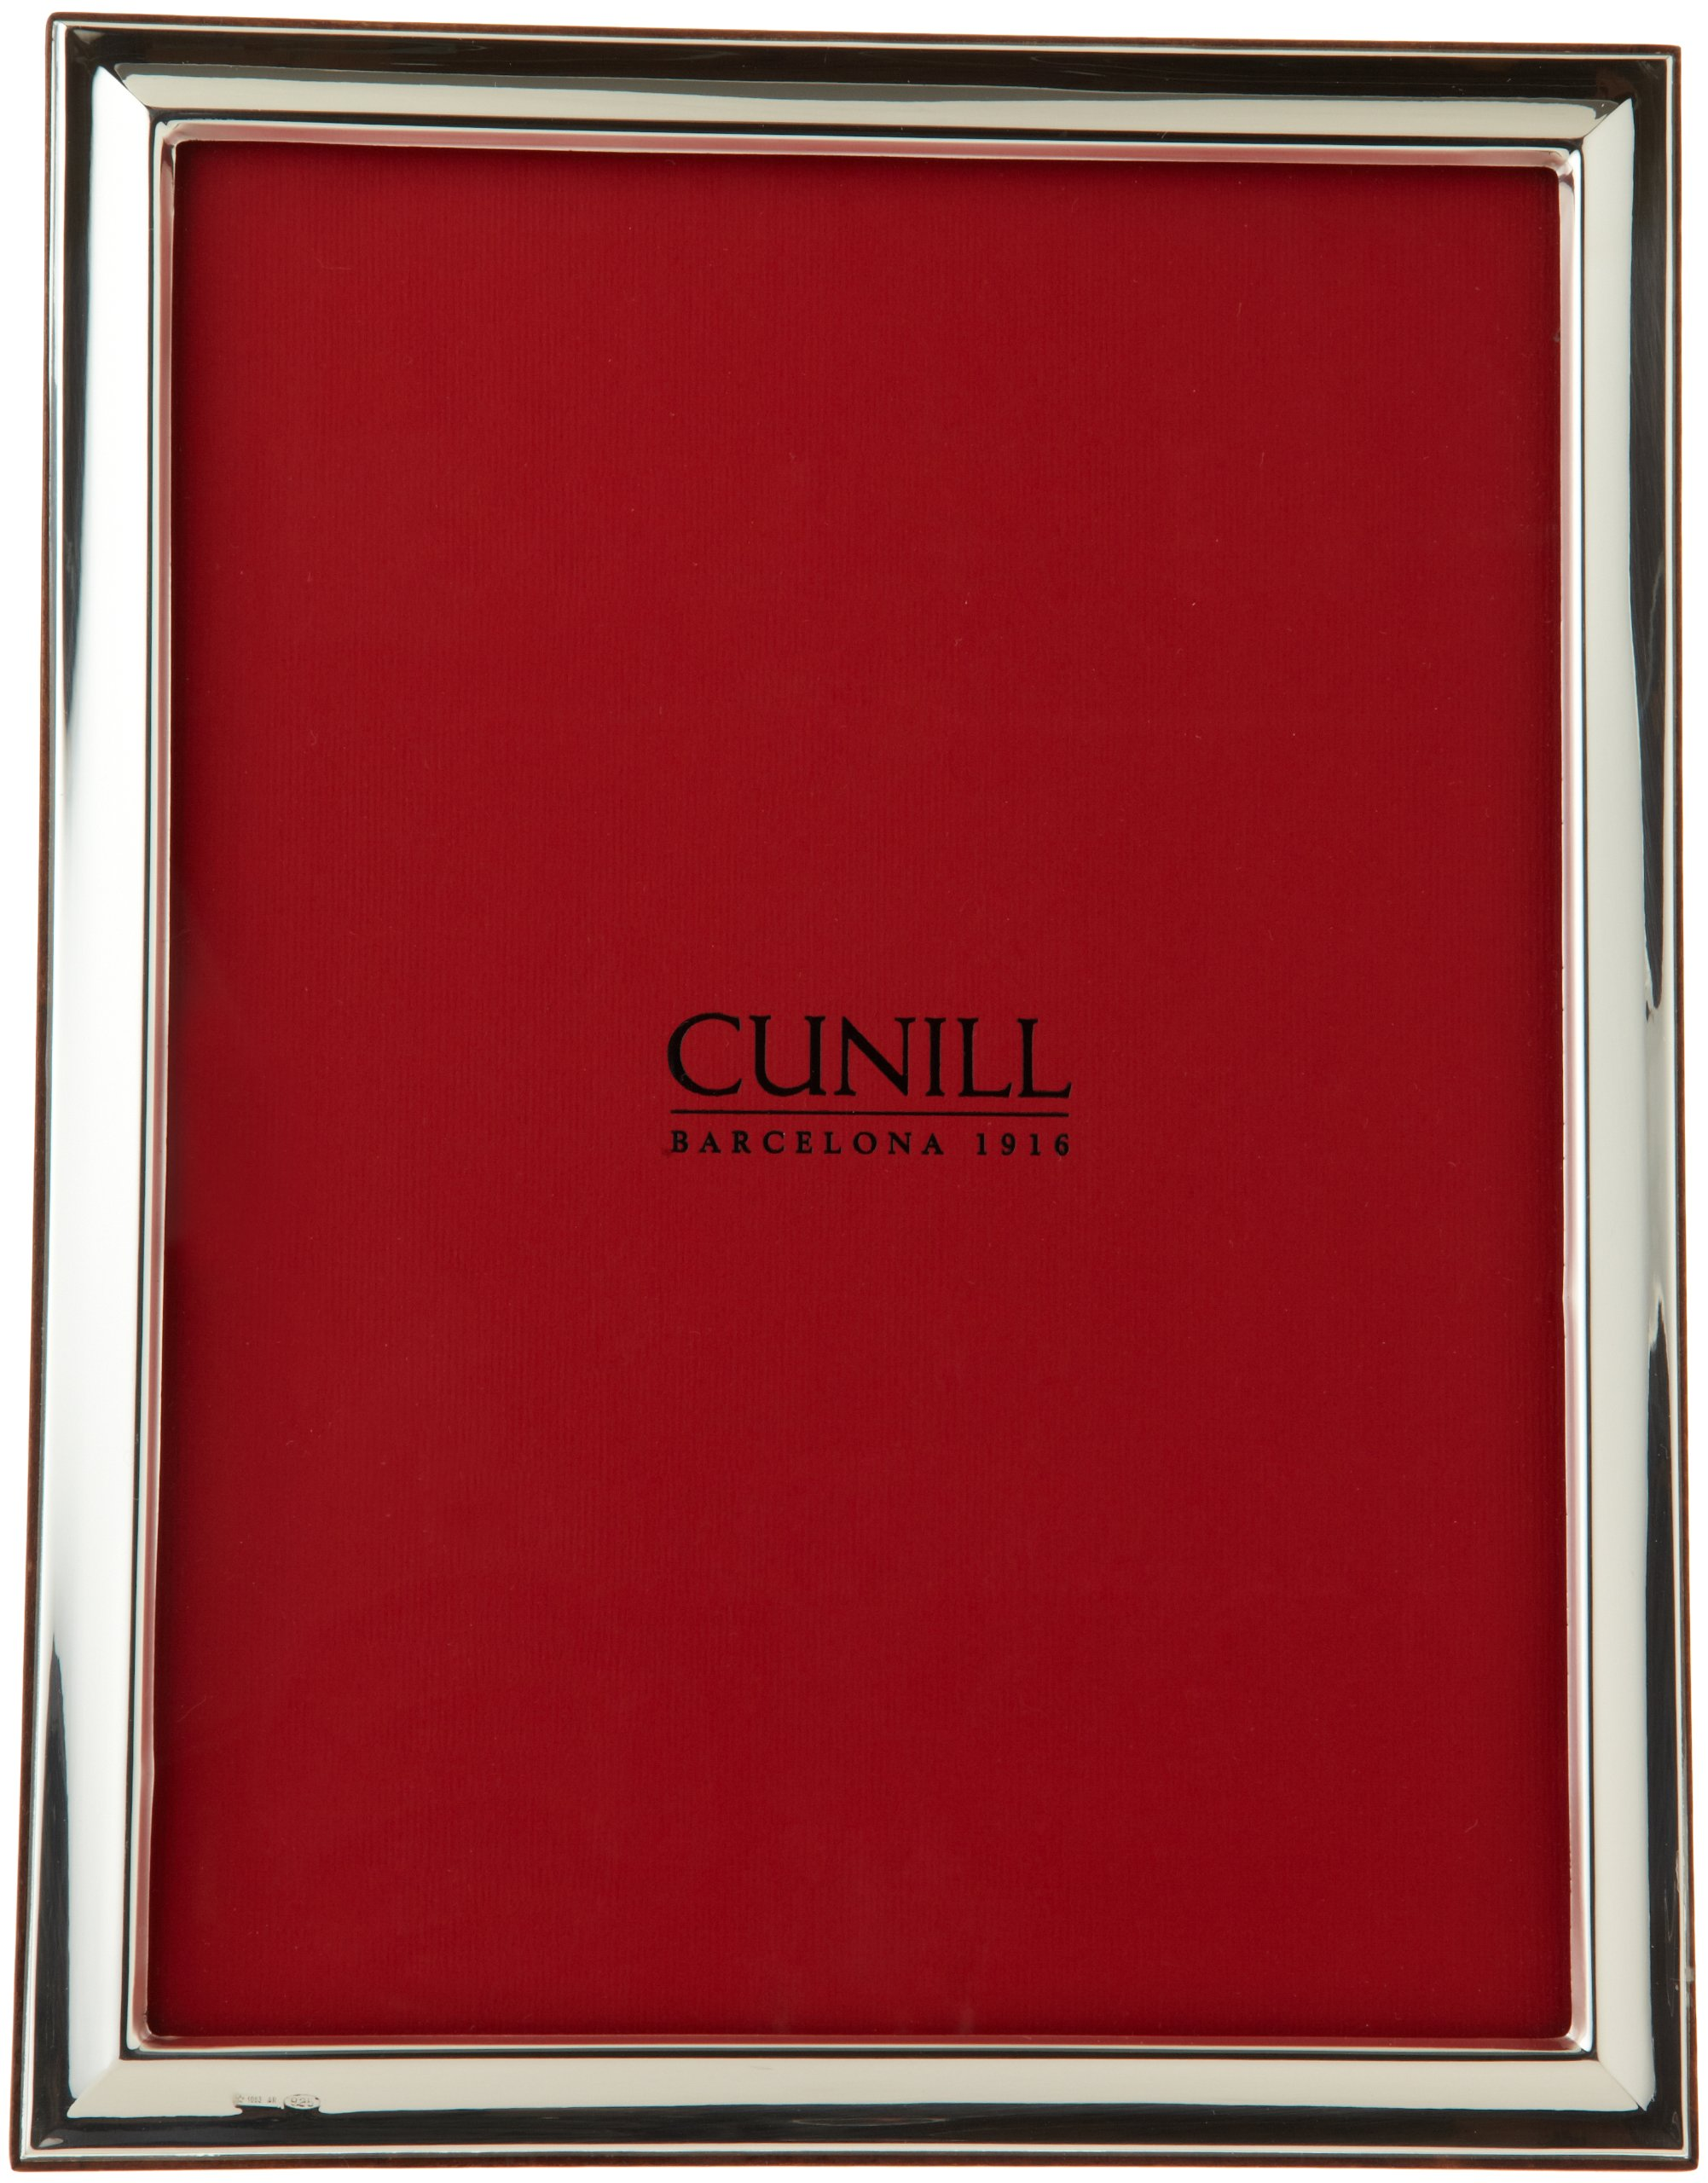 Cunill Barcelona Plain Beveled Sterling Silver Frame, 8'' x 10'' by Cunill